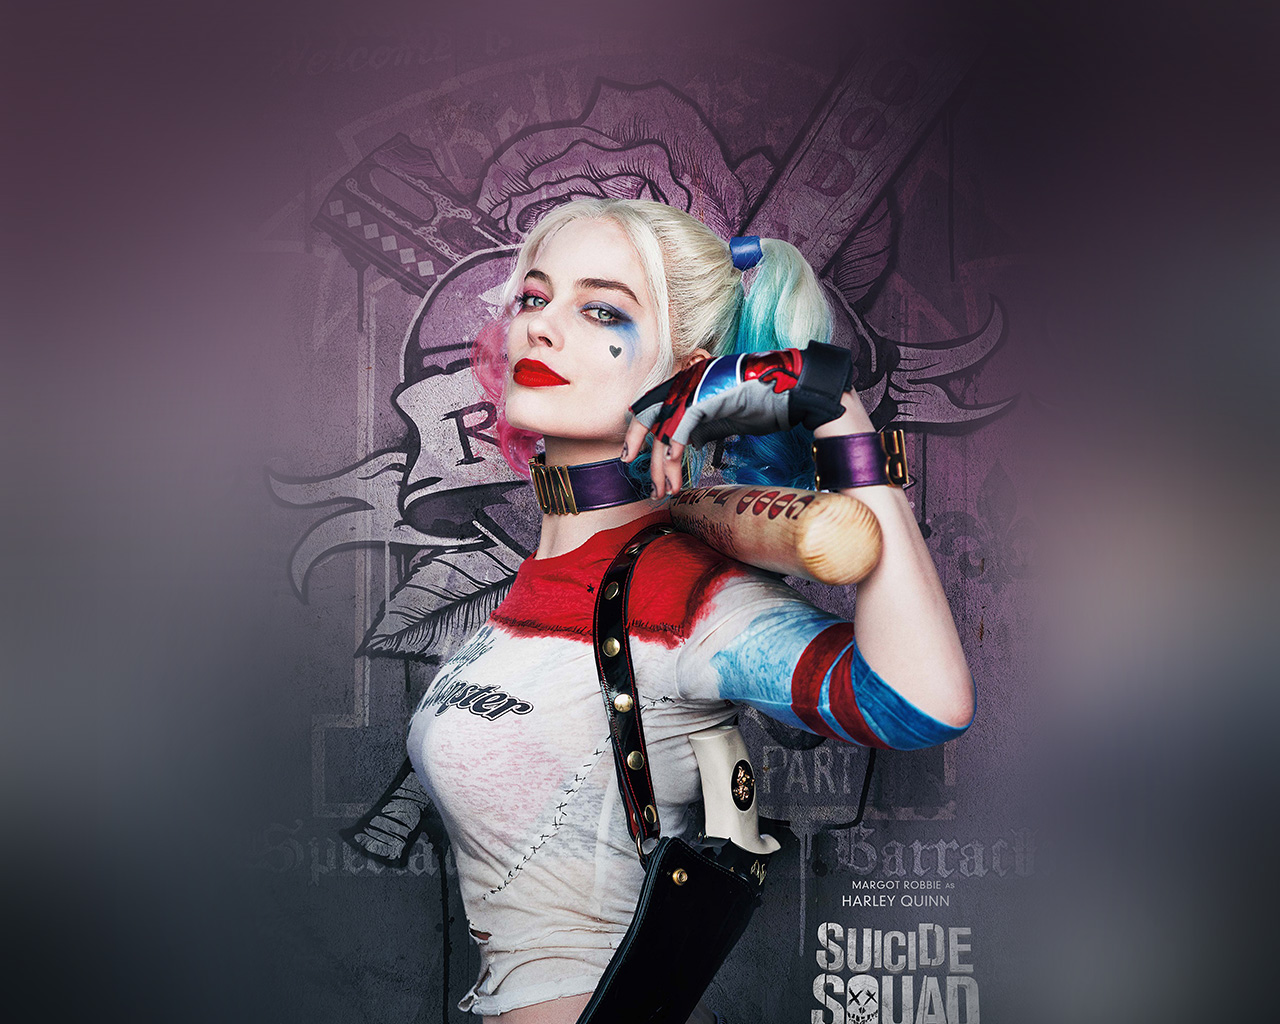 Wallpaper Hd Suicide Squad Harley Quinn: 1440 X 900